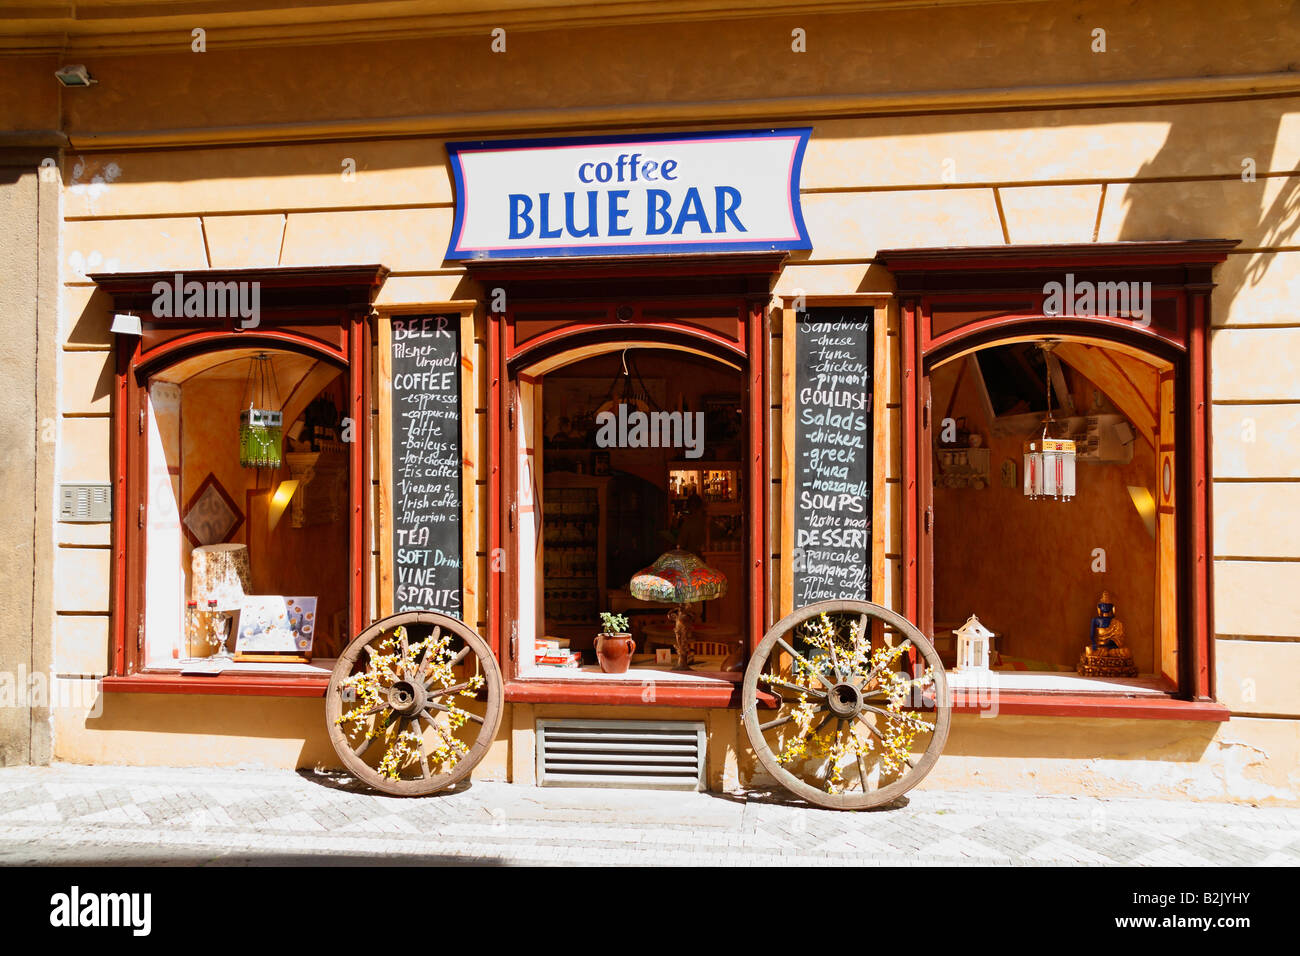 The Small Authentic Blue Bar Cafe Decorated With Old Horse Carriage Stock Photo Alamy